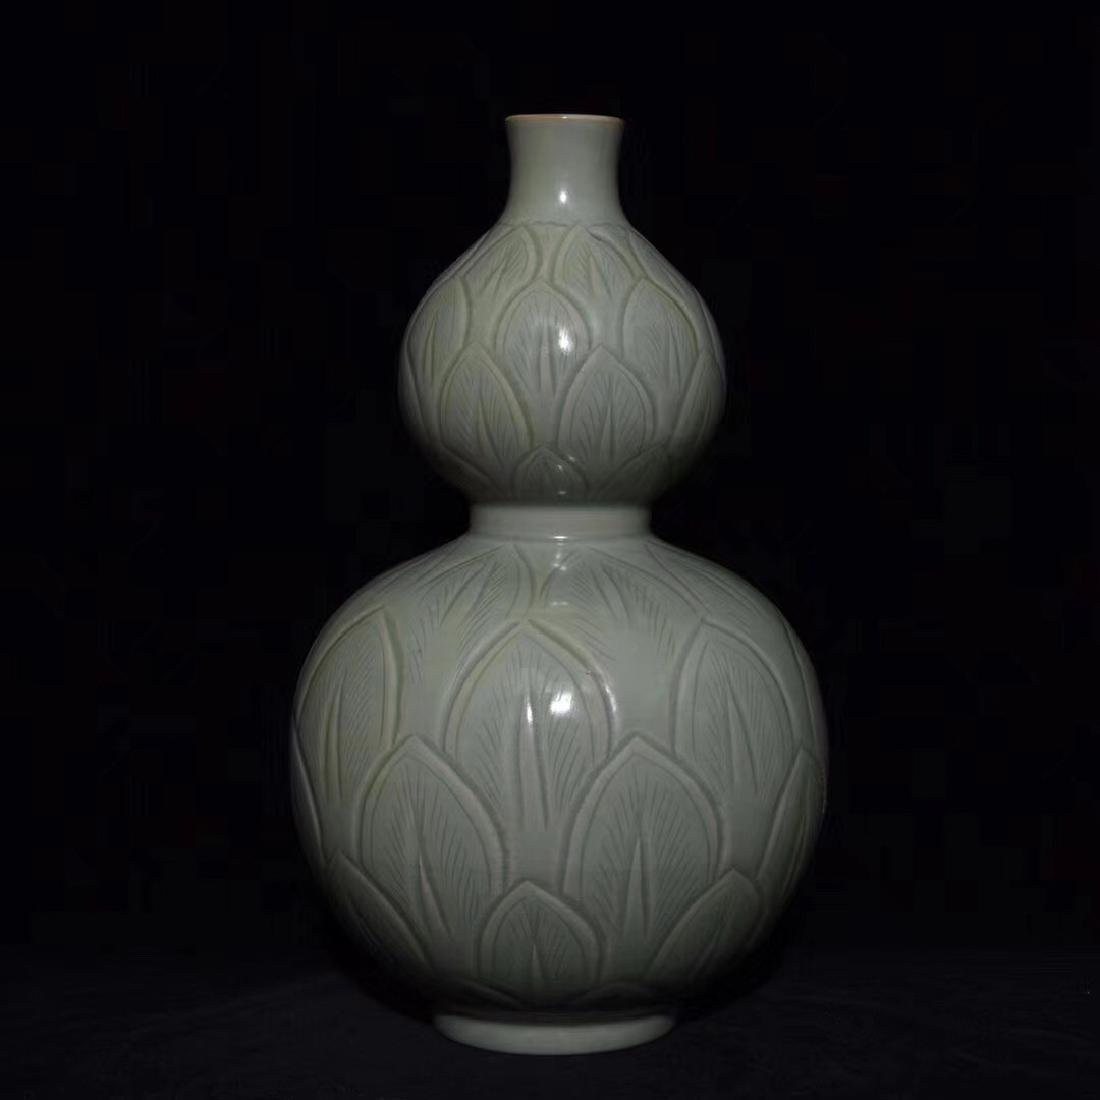 A YUEYAO INCISED FLORAL DOUBLE-GOURD VASE